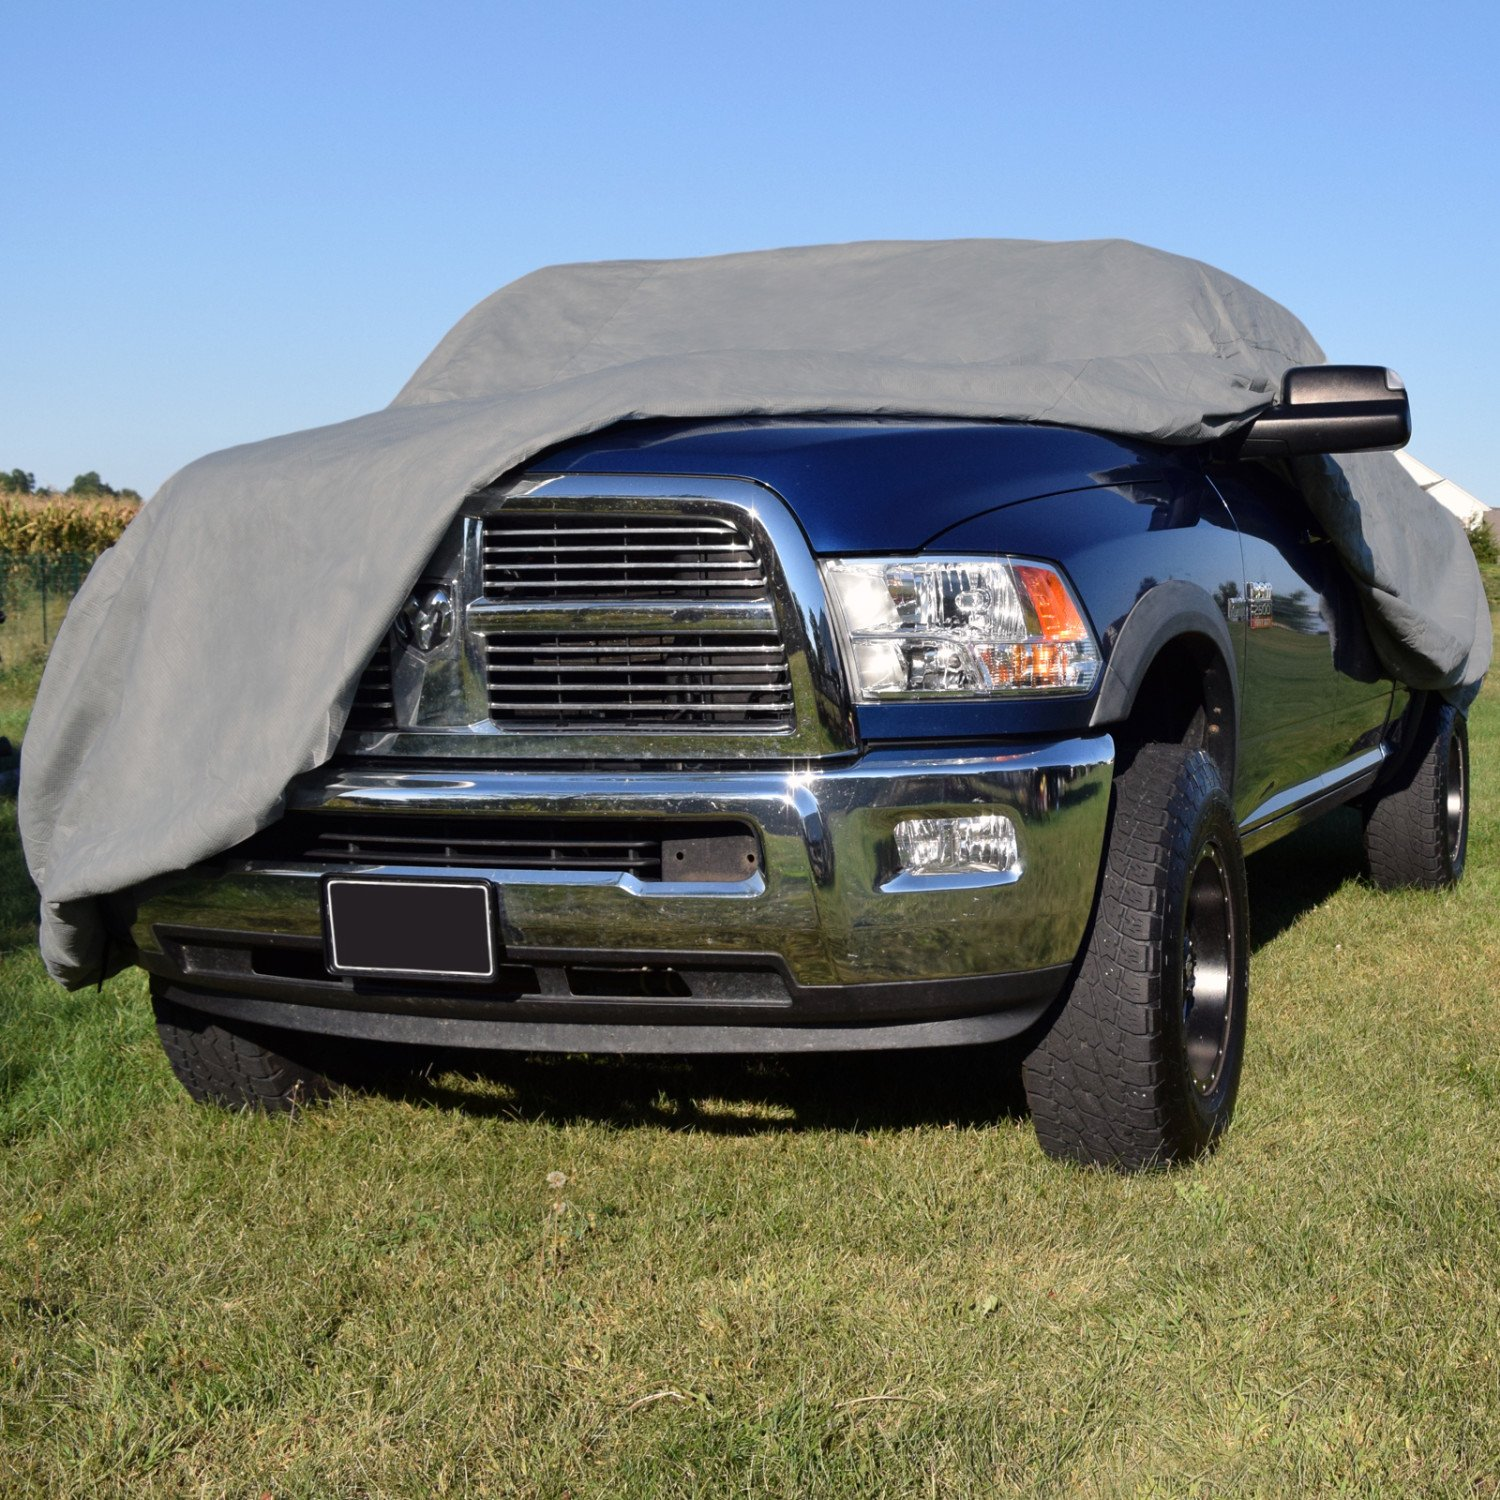 Polypropylene, Gray Budge Duro Truck Cover Fits Trucks with Standard Cab Compact Pickups up to 197 inches TD-2